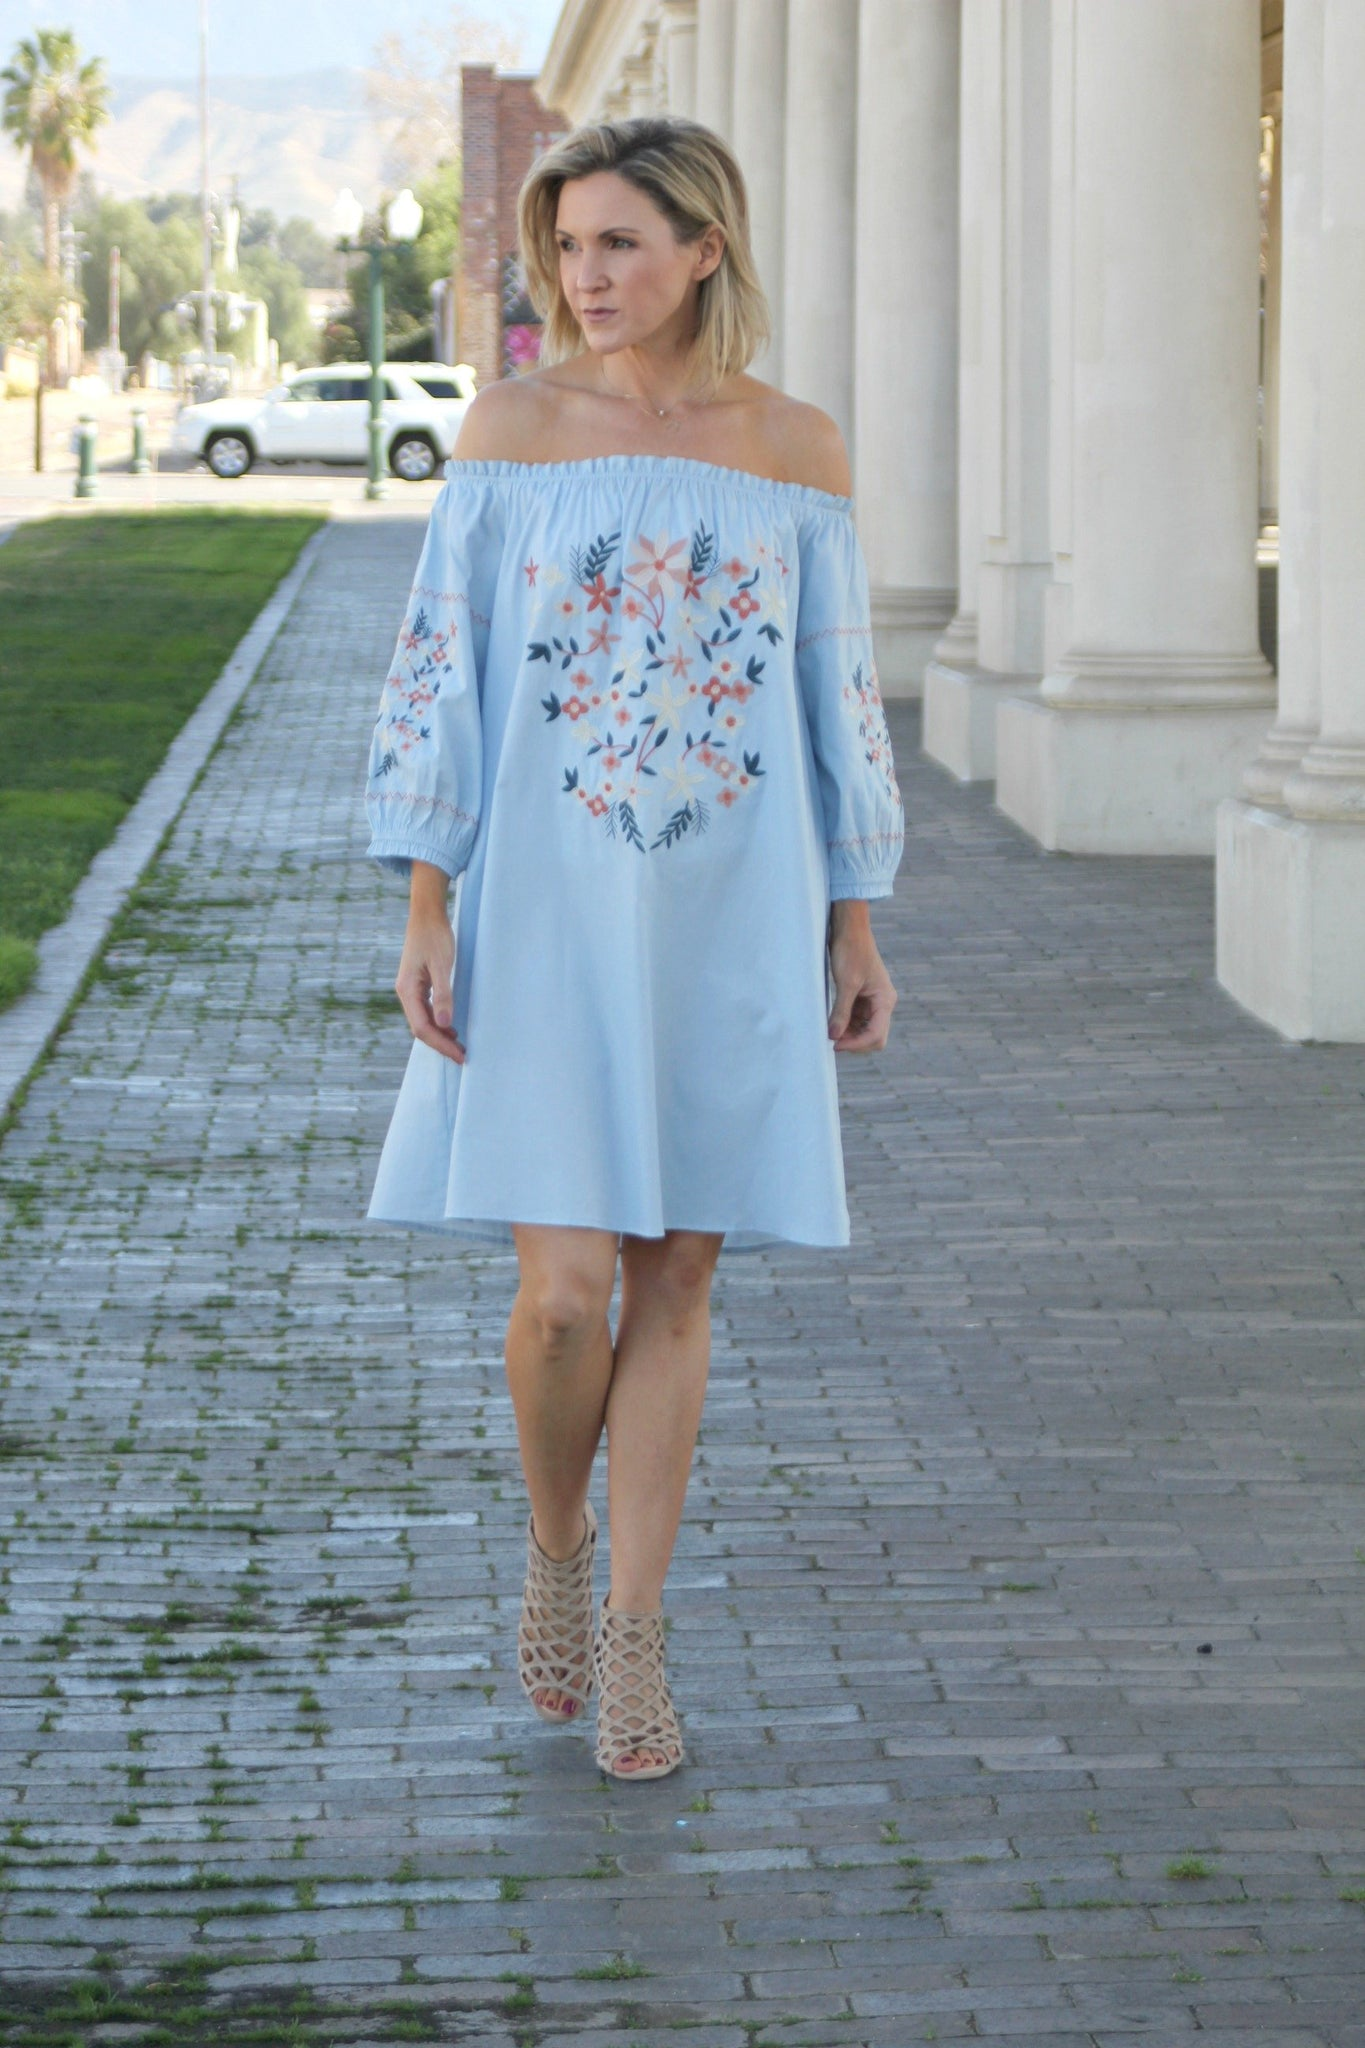 The Sunny Embroidered Dress in Sky Blue